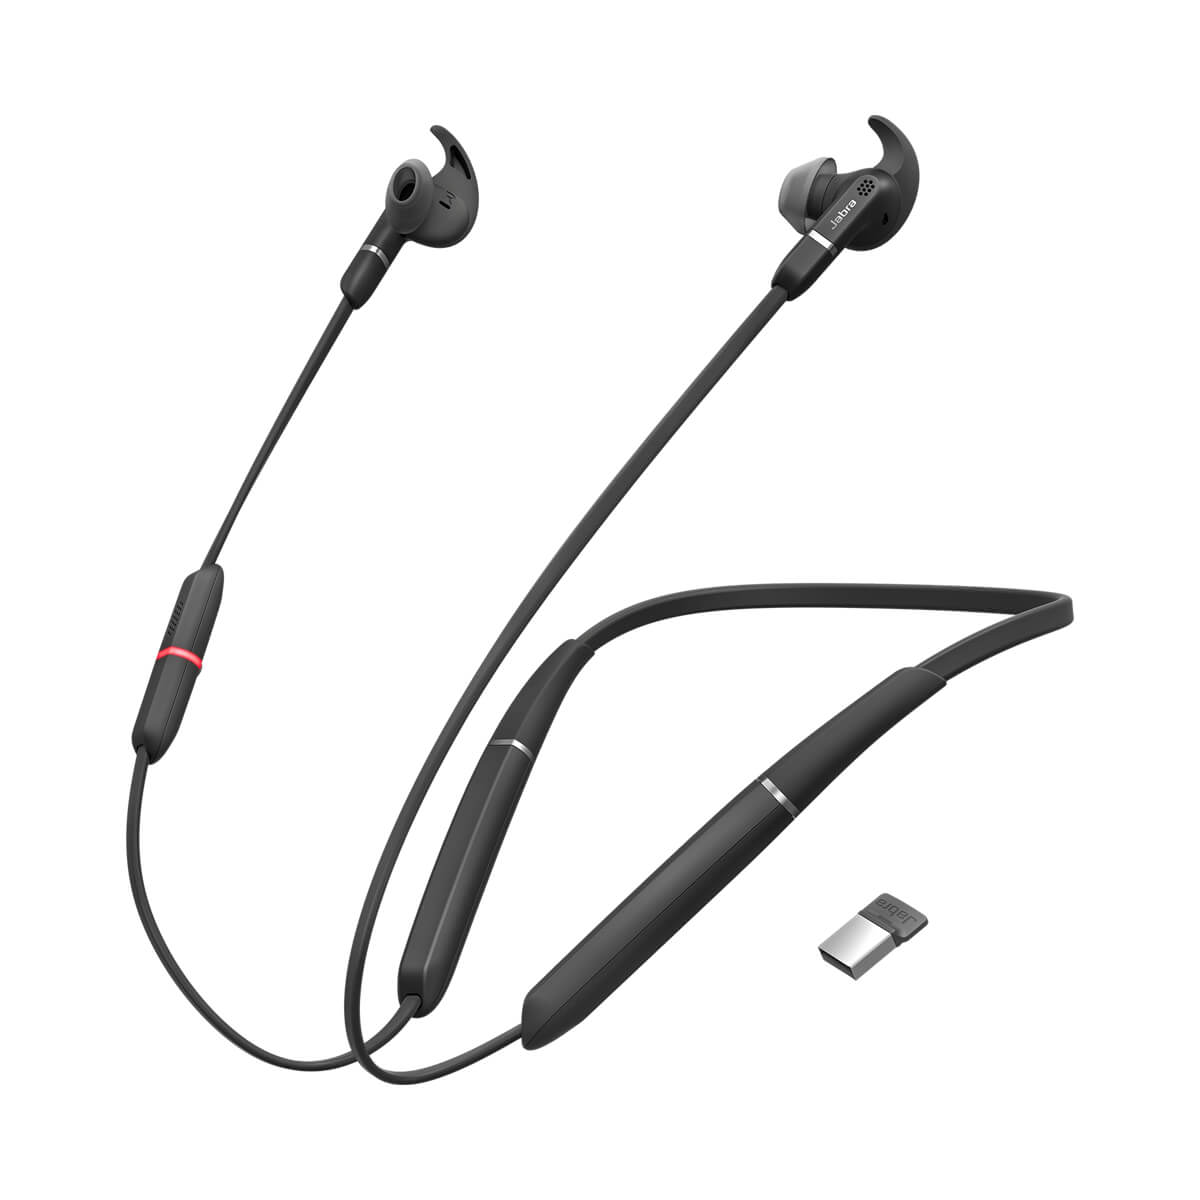 Jabra Evolve 65e Engineered To Deliver Professional Uc Certified Sound On The Go